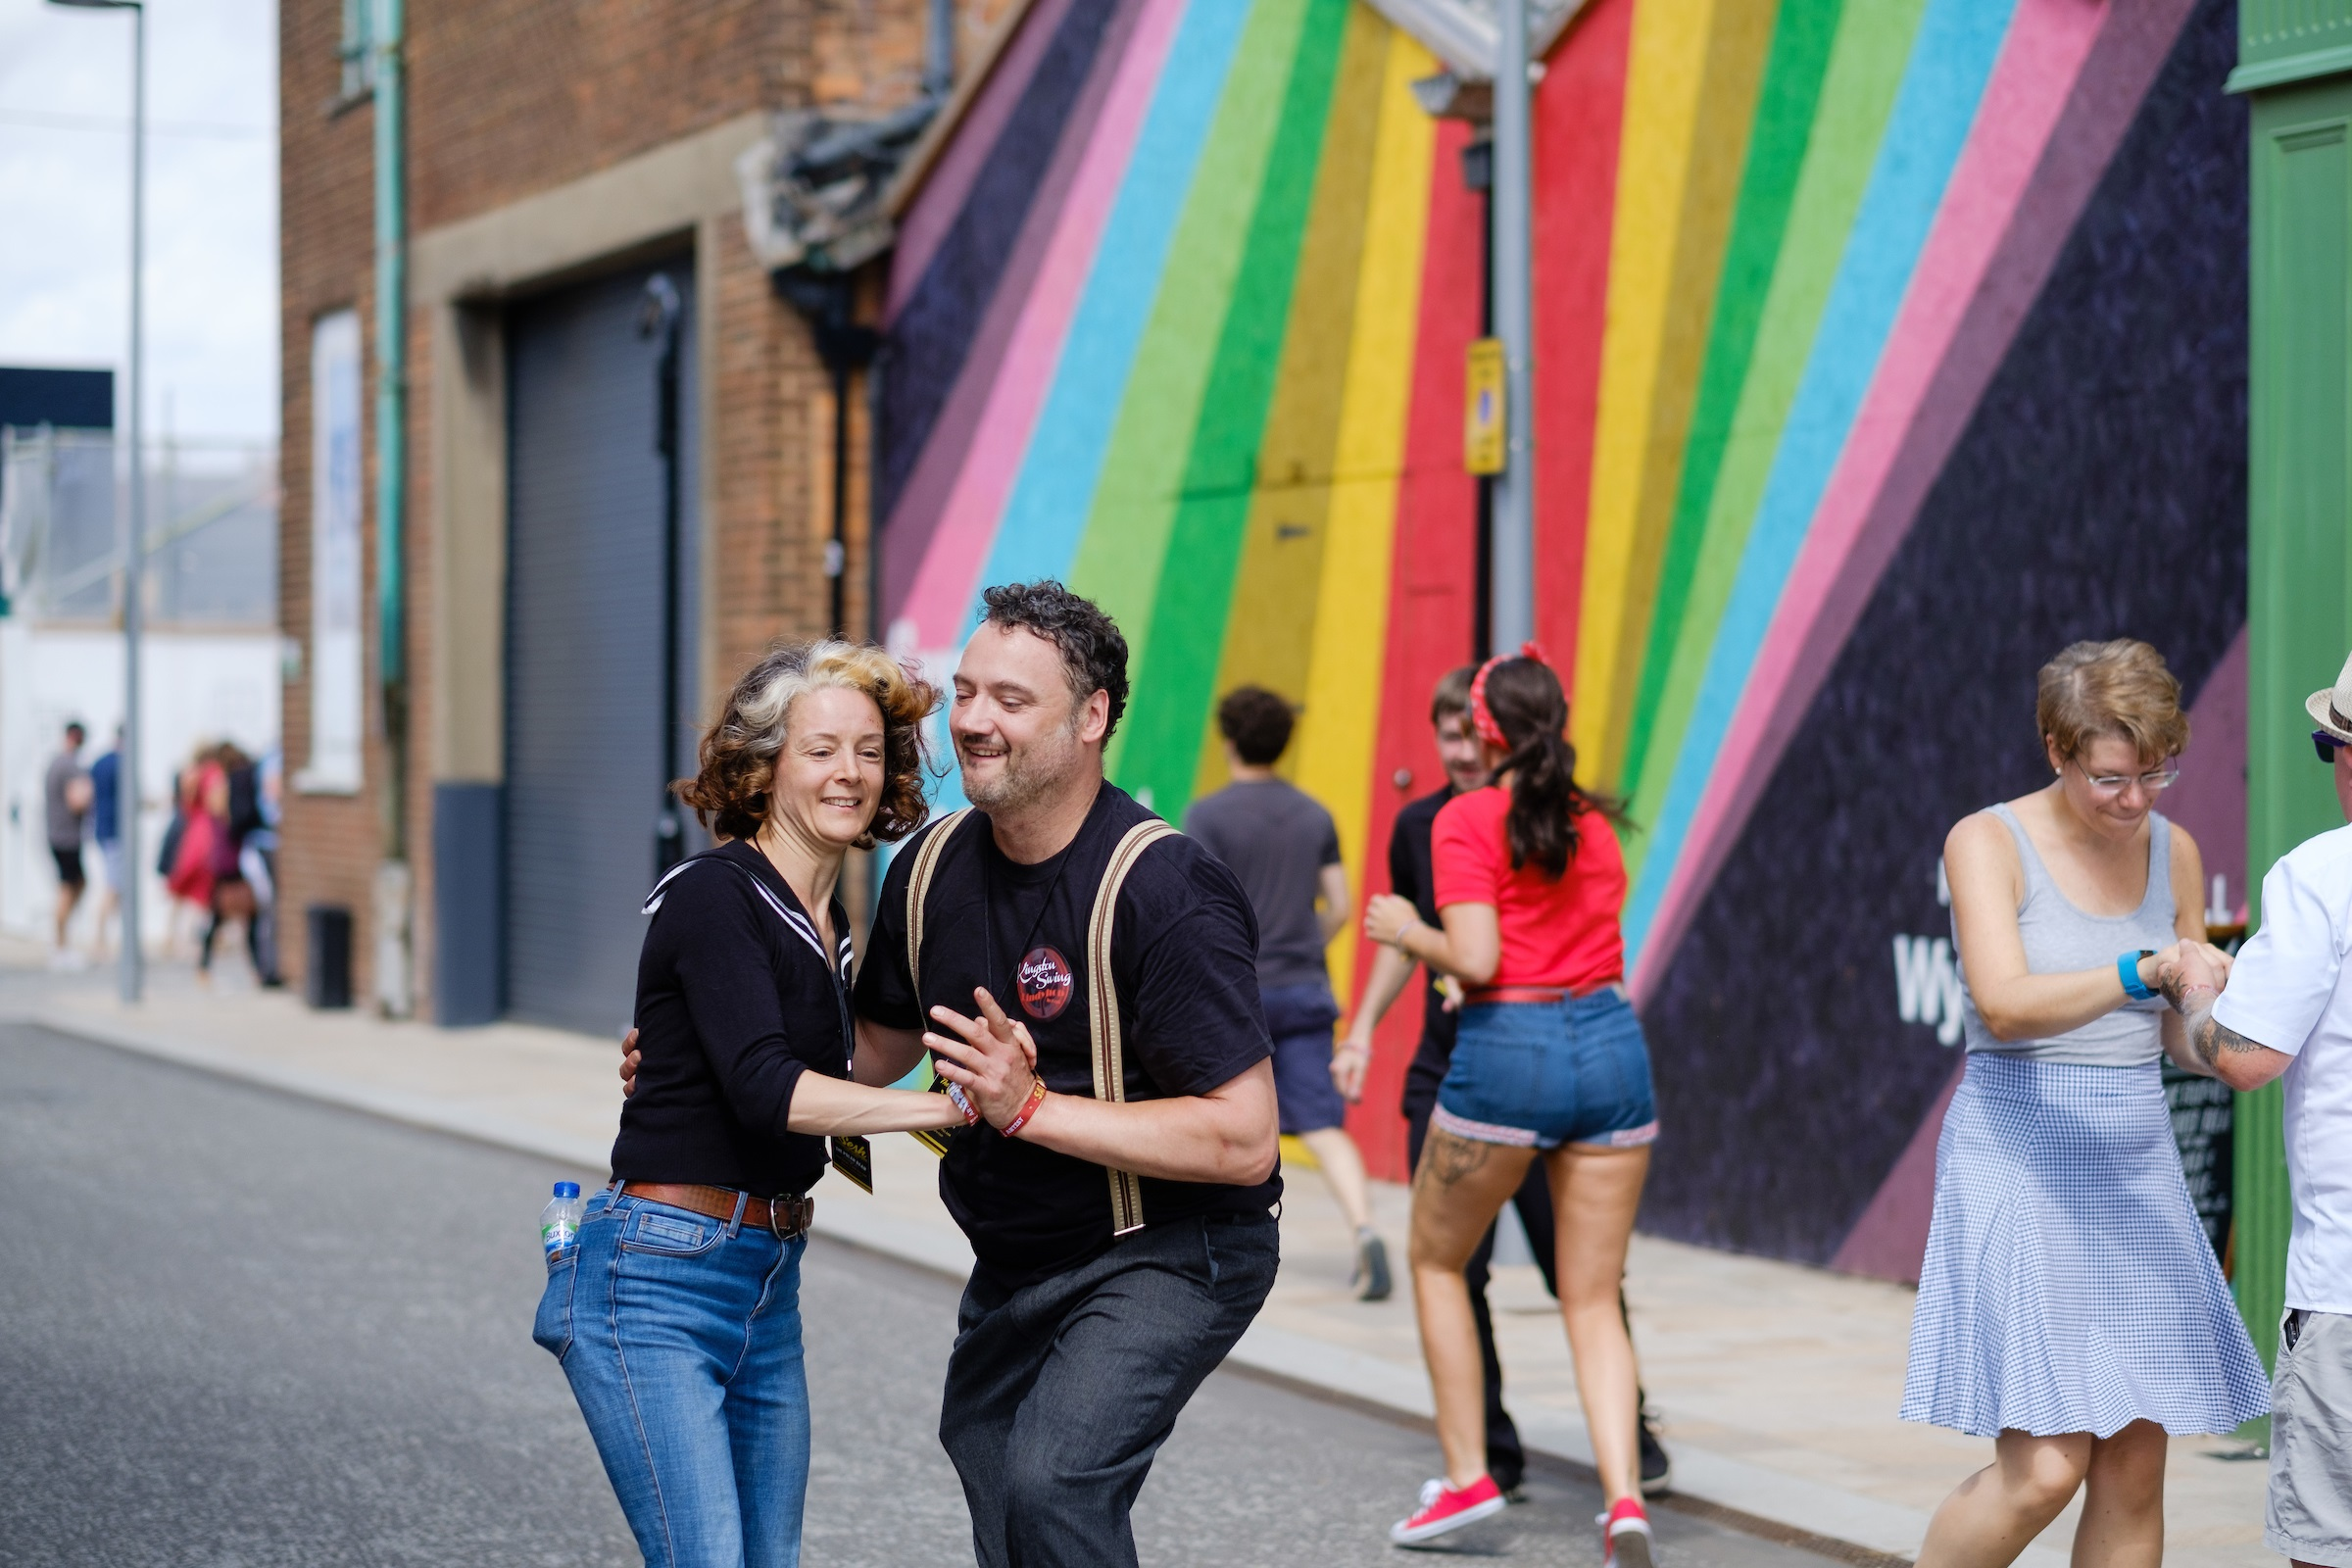 Festival-goers get into the Sesh spirit at last year's event. This year organisers are aiming to make it the greenest Humber Street Sesh yet.